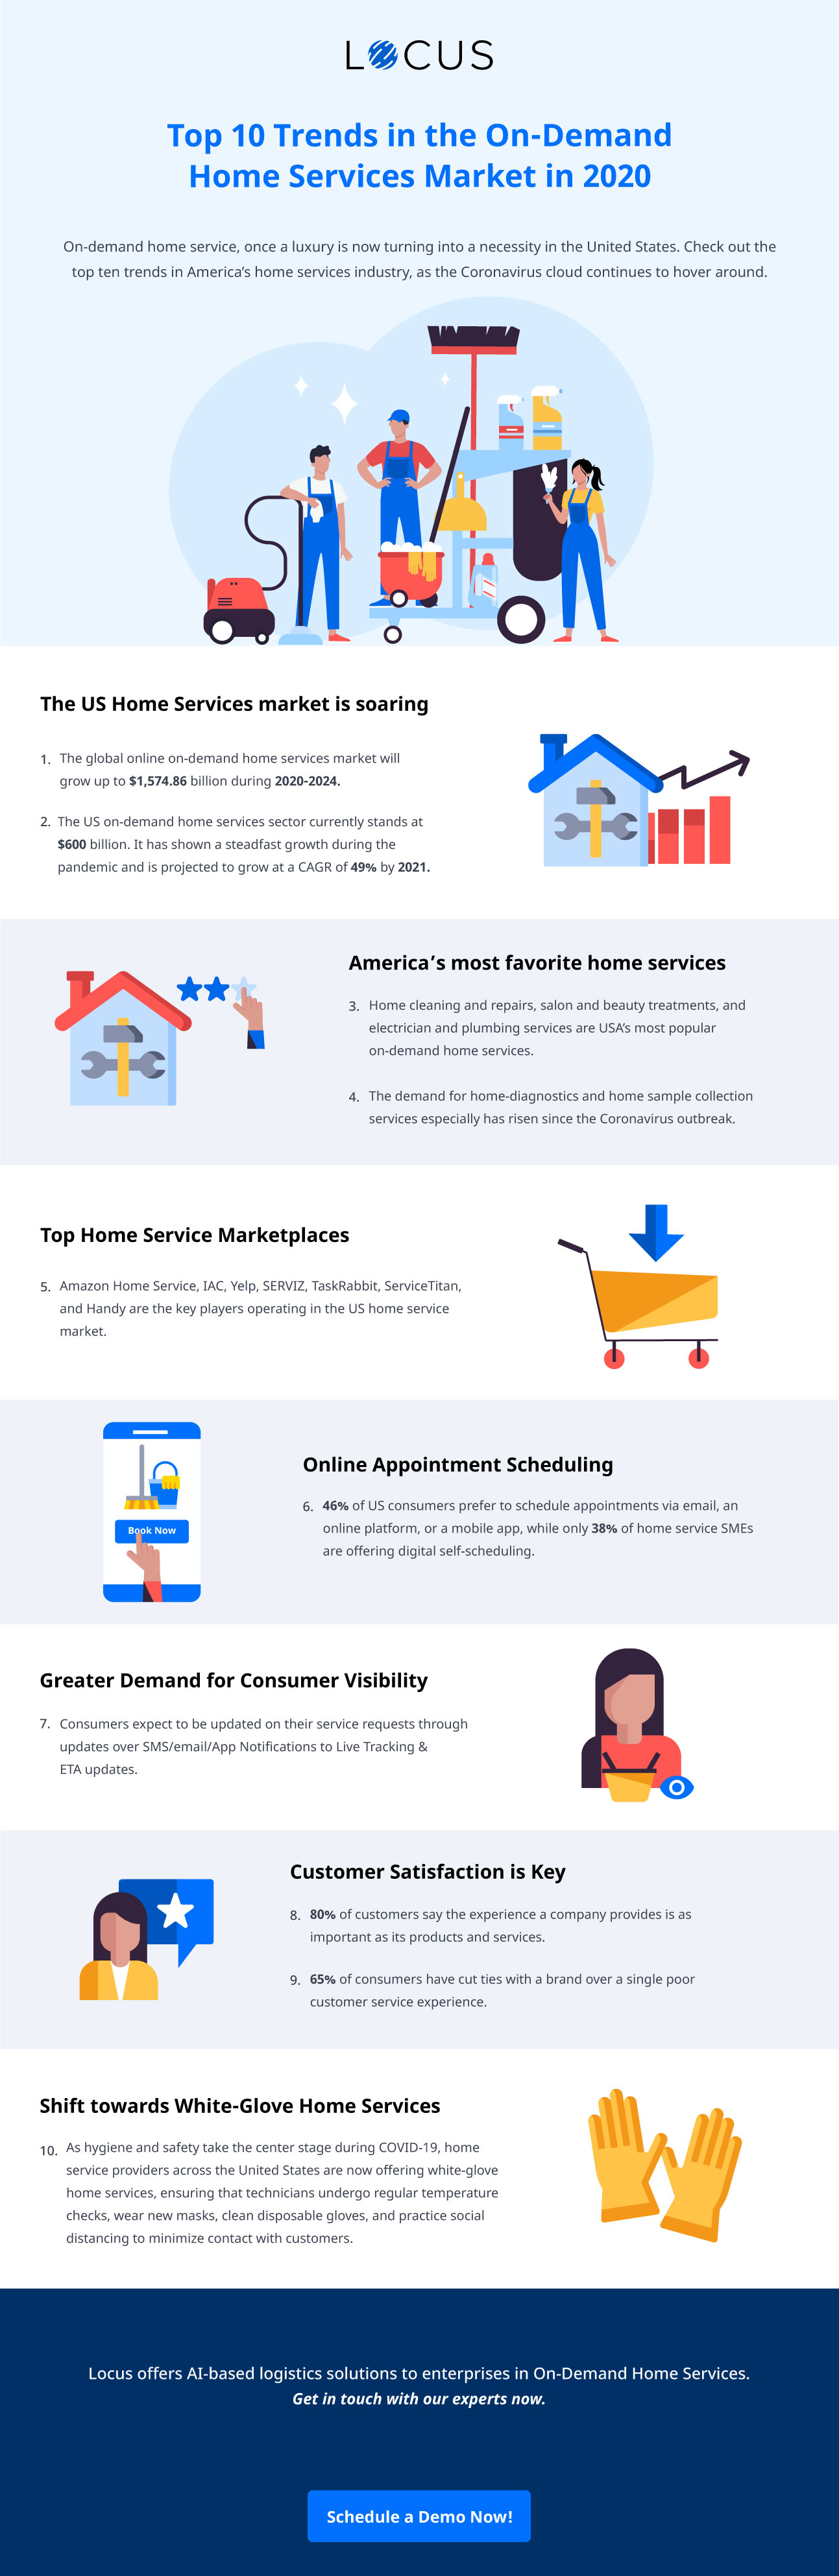 Top10 Trends in the On-demand Home Services Market in 2020